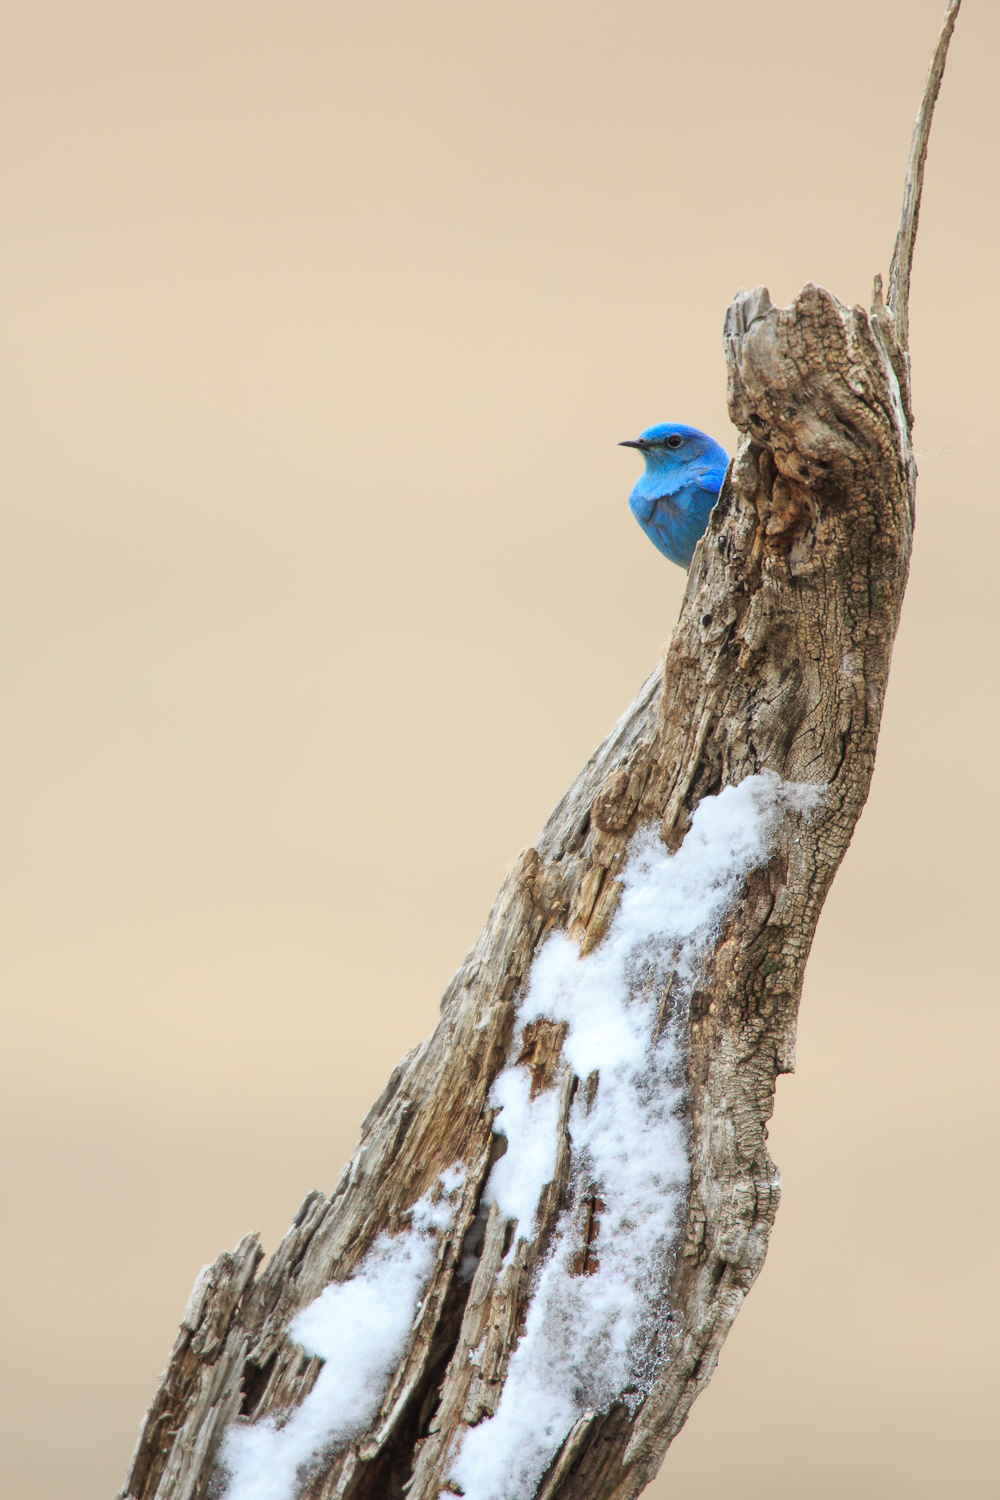 Bluebird playing peekaboo with the snow and wind.